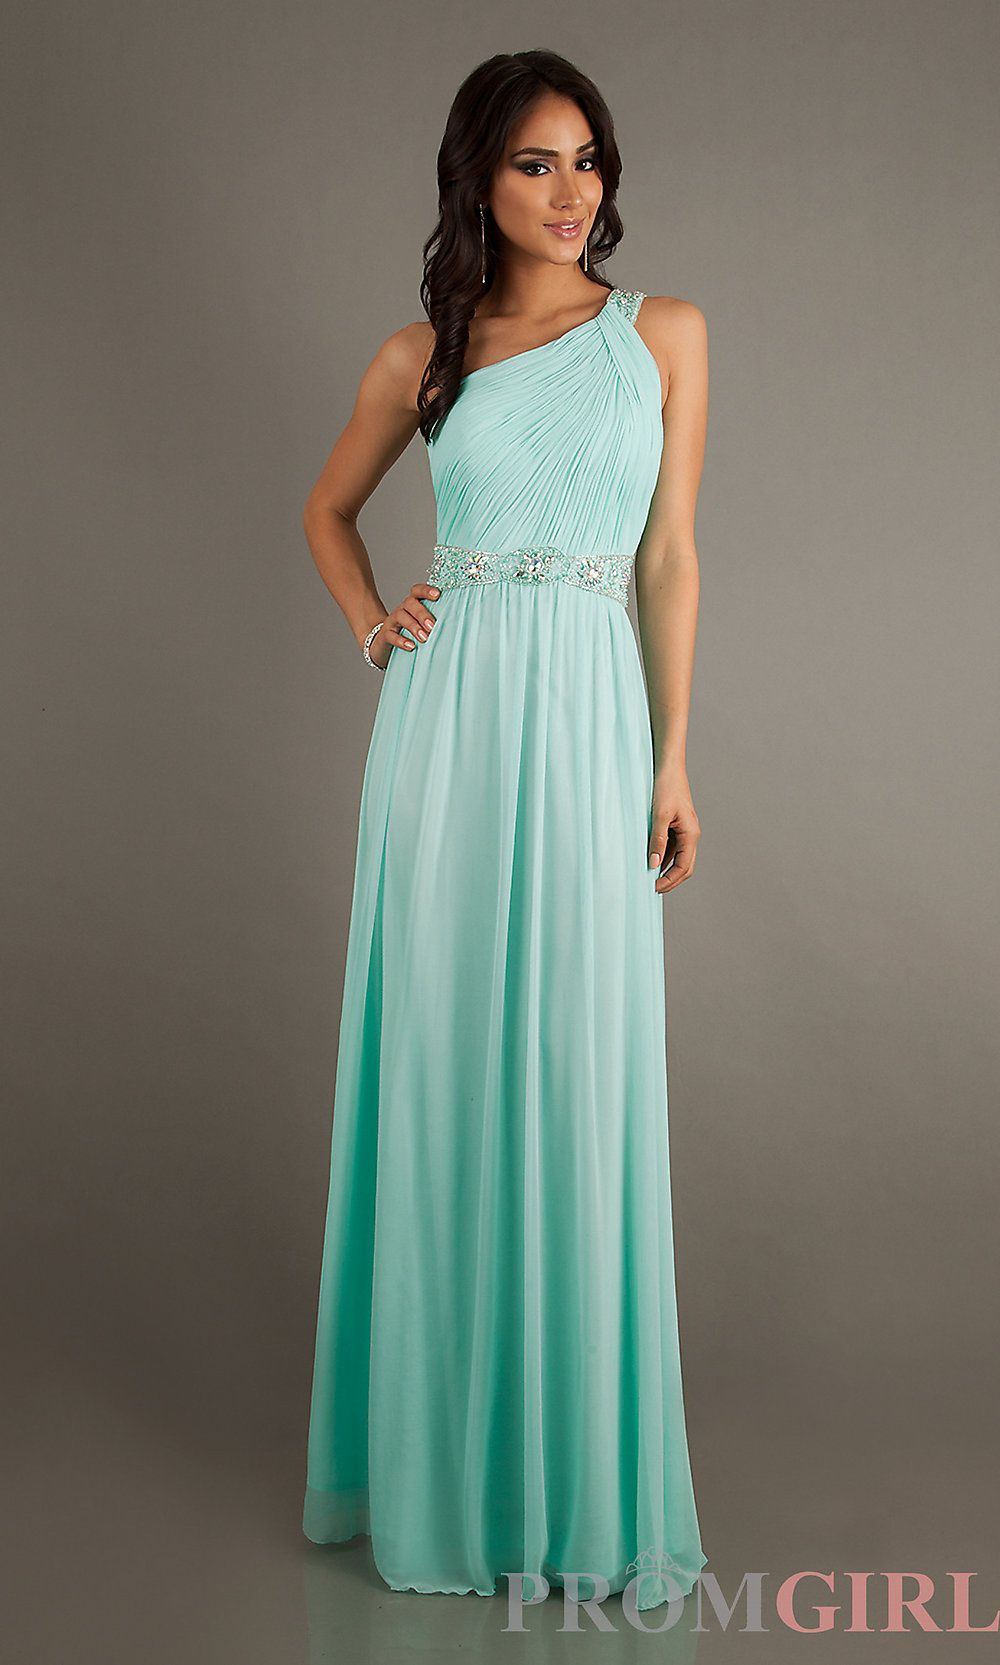 2013 Temptation Prom Dress, One Shoulder Evening Gowns- #prom ...